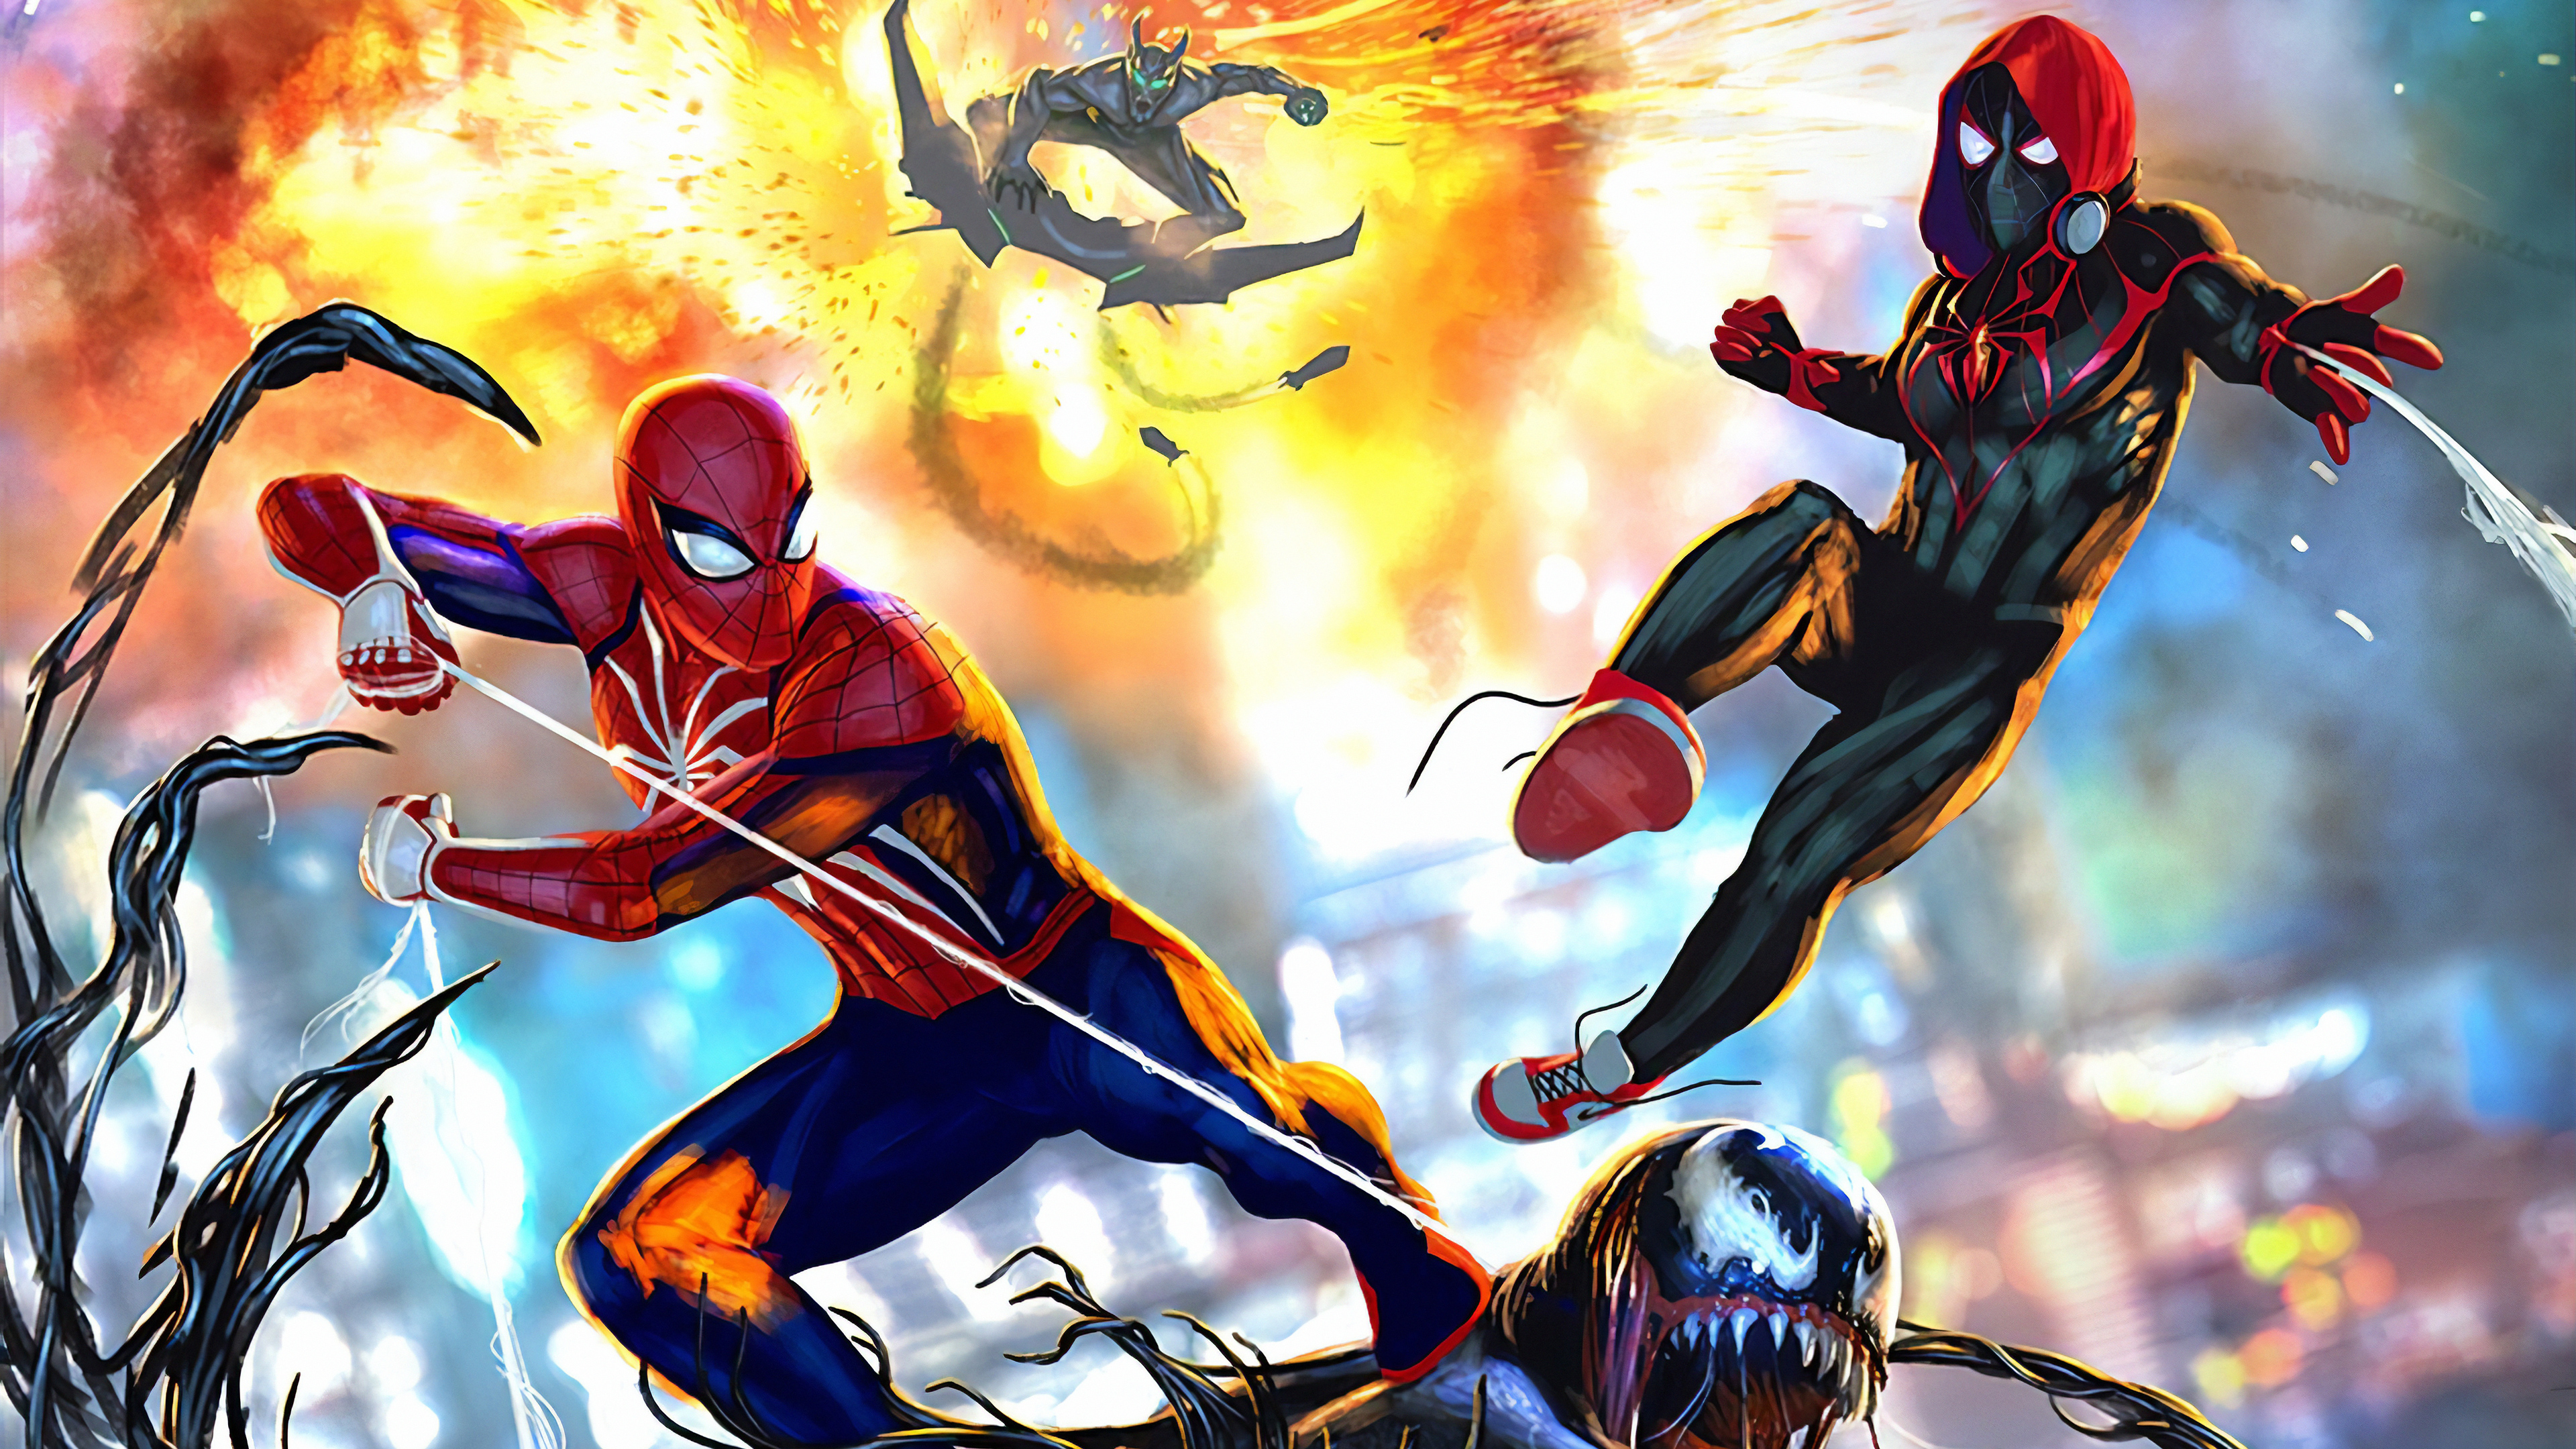 spiderman and miles 1572368473 - Spiderman And Miles - superheroes wallpapers, spiderman wallpapers, hd-wallpapers, digital art wallpapers, artwork wallpapers, art wallpapers, 4k-wallpapers